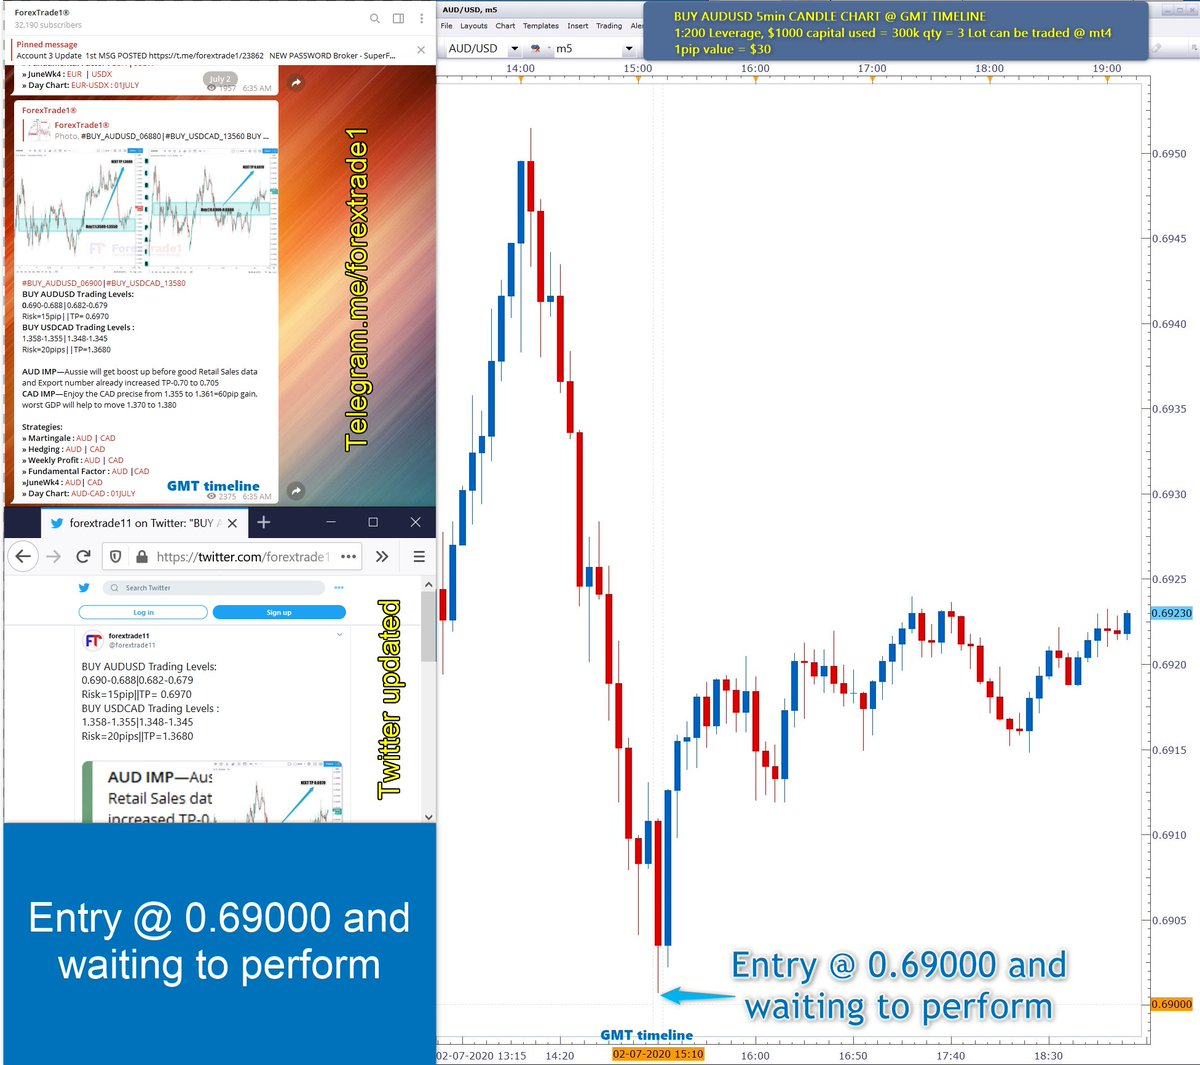 BUY AUDUSD AND USDCAD PAID/FREE CLIENT PERFORMANCE  BUY AUDUSD Entry at 0.6900 and waiting to perform   BUY USDCAD Entry =1.35600 , Exit=1.36200 60 pips gain $960 Profit 96% ROI Next TP=1.36800  https://twitter.com/forextrade11/status/1278599648911876096…pic.twitter.com/k70WM5FYGm